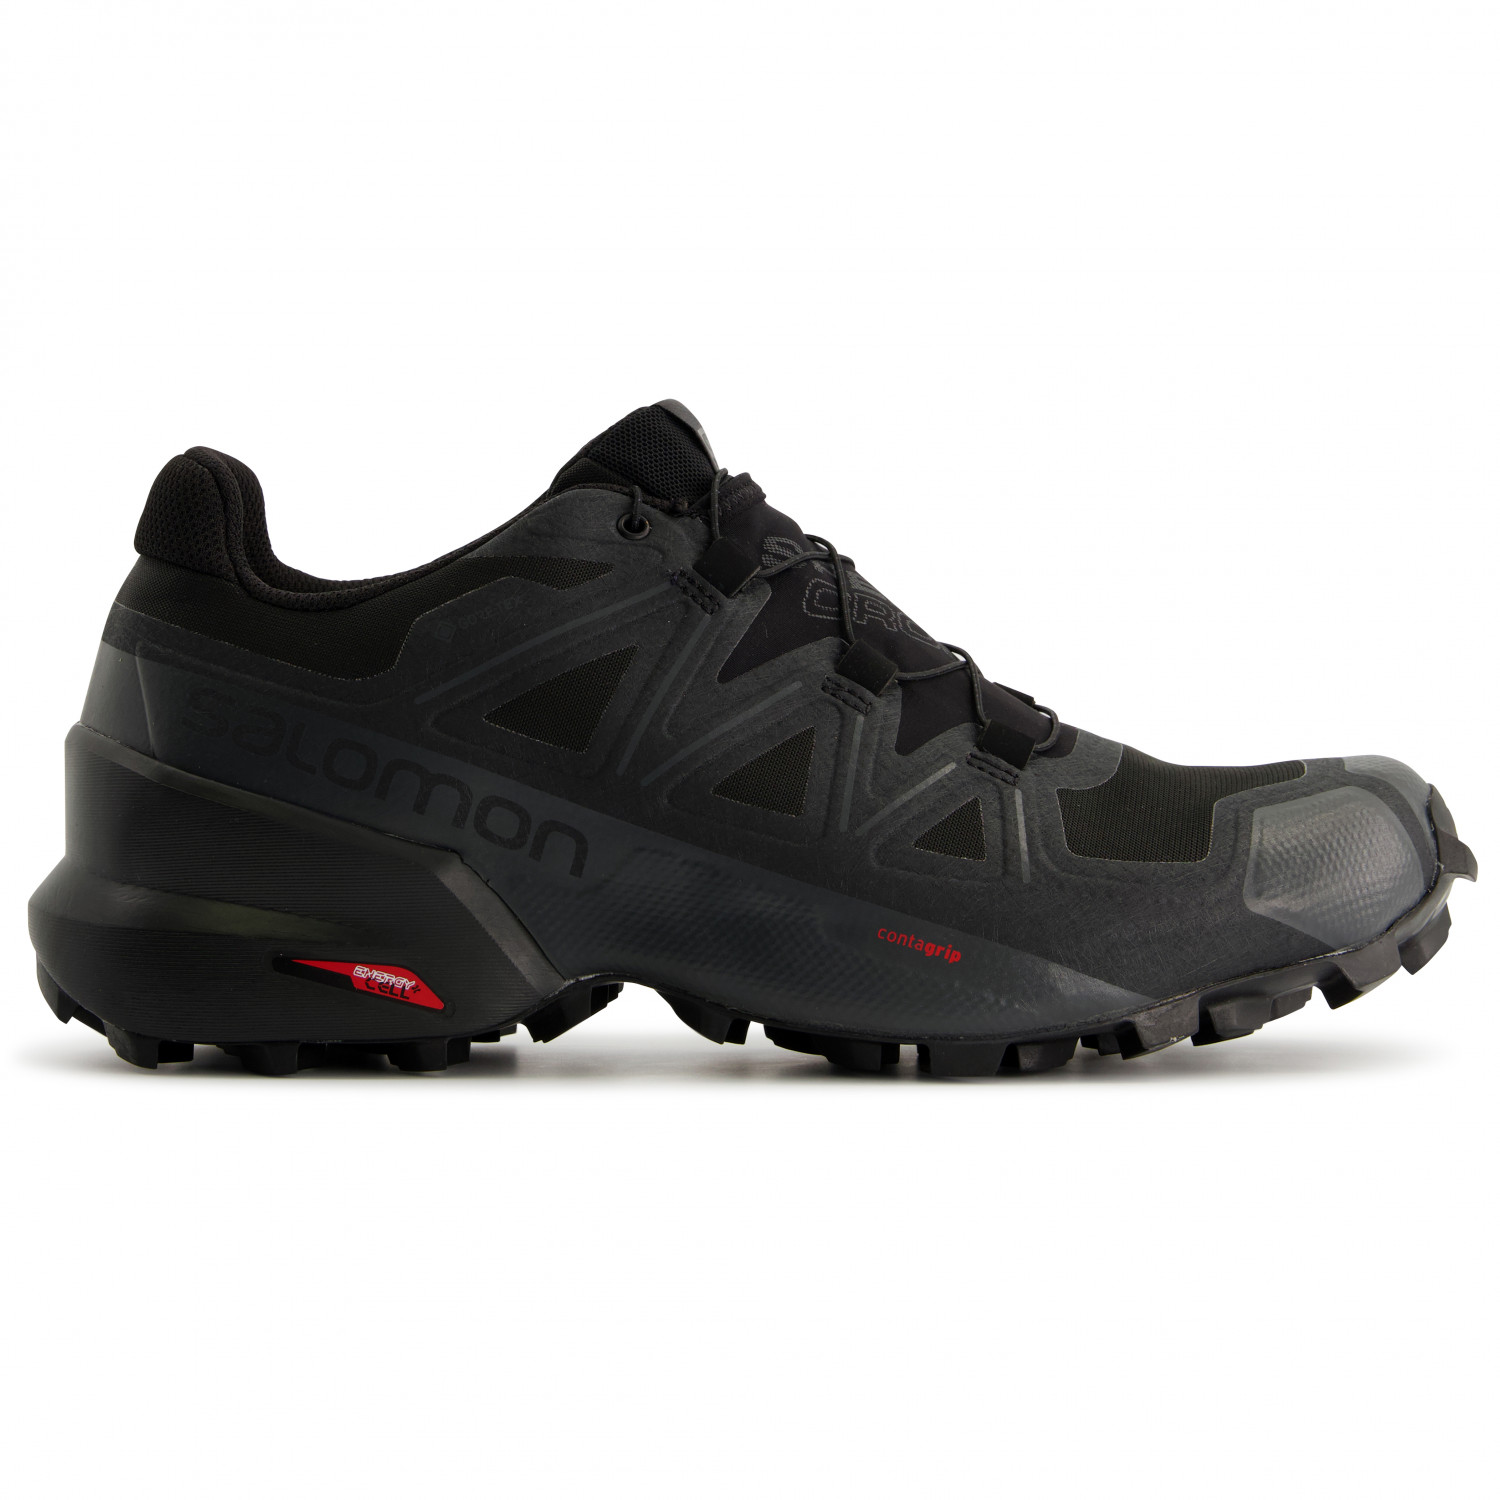 Salomon Speedcross 5 GTX - Trail running shoes Men's | Free ...